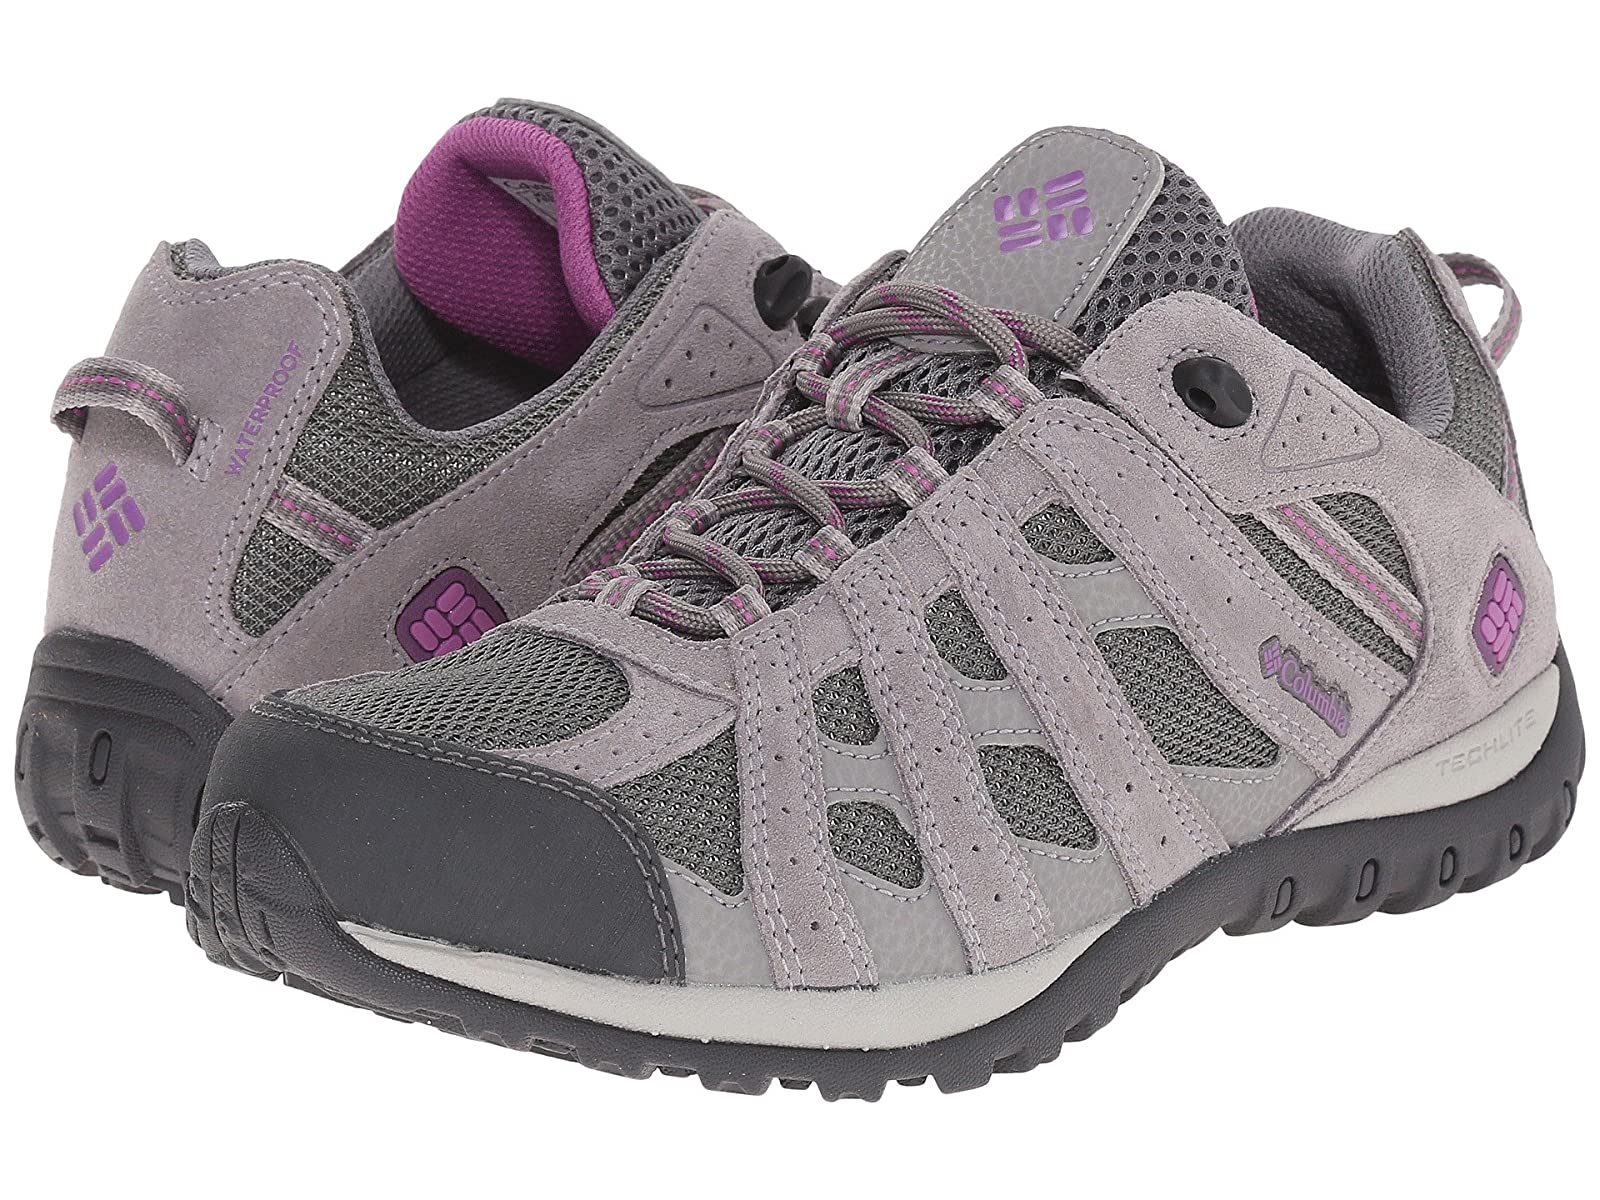 Columbia Redmond™ WaterproofCheap and distinctive eye-catching shoes